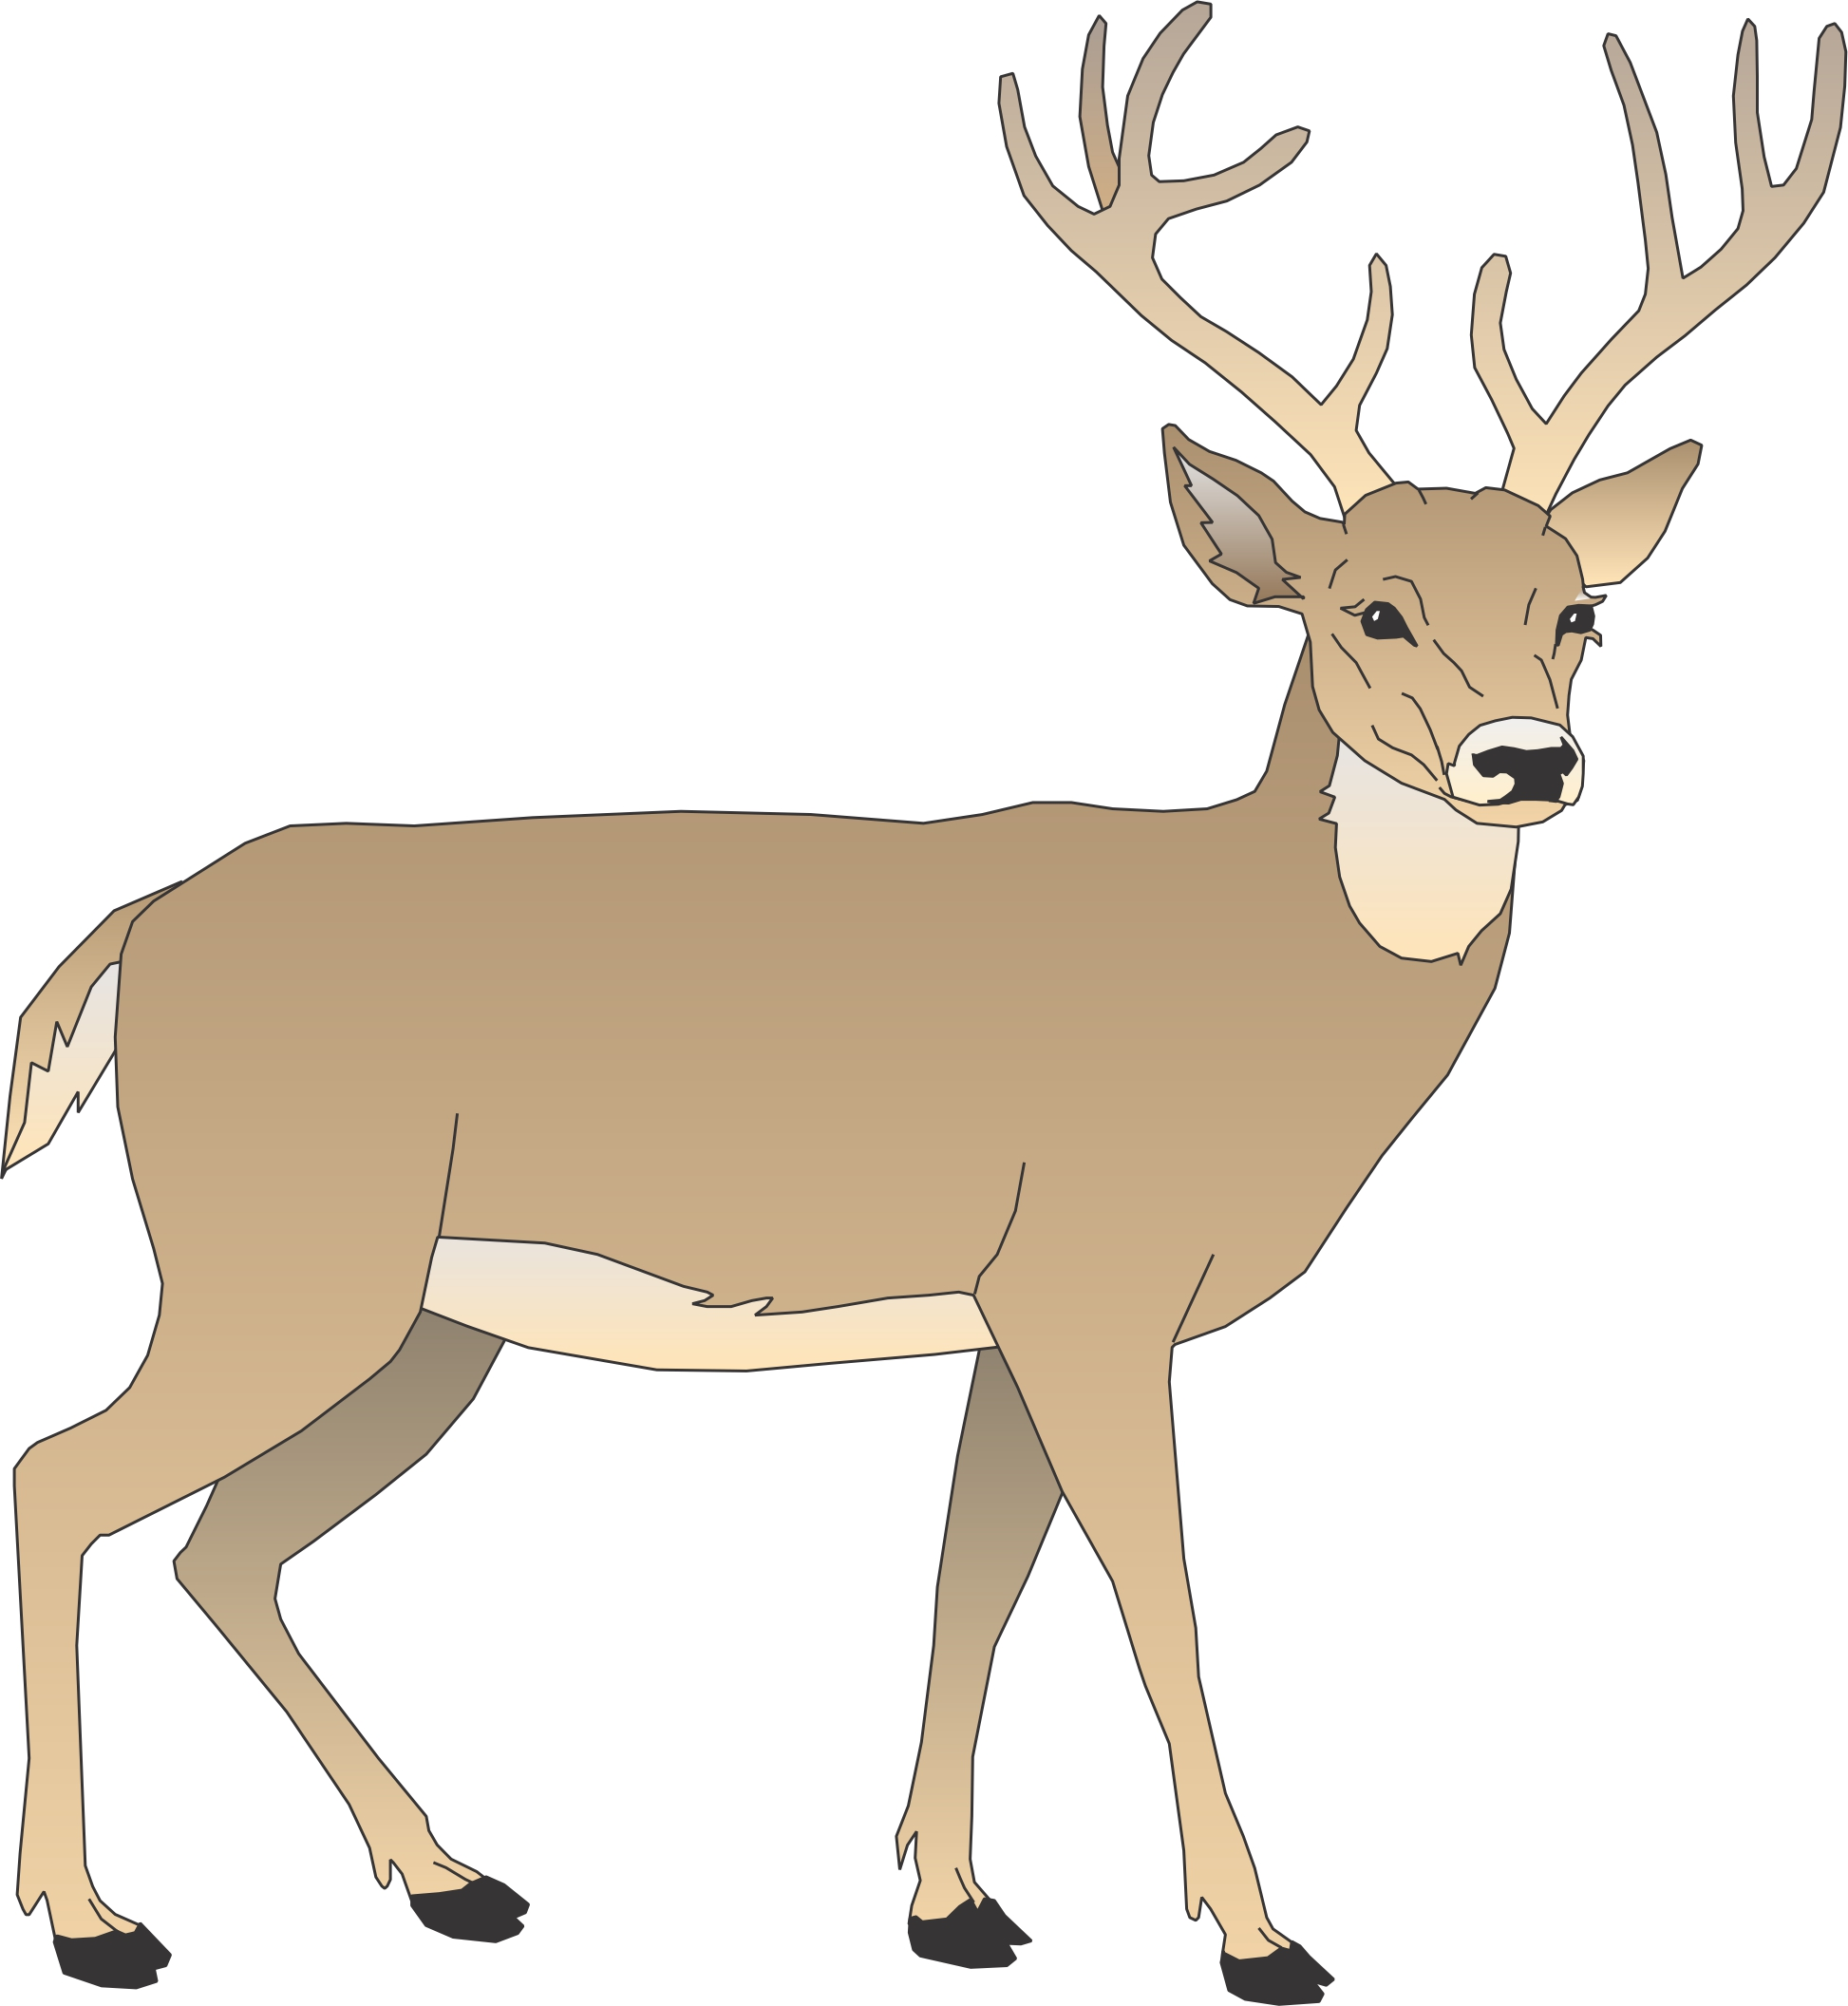 Deer clipart small deer. Free cartoon pictures of